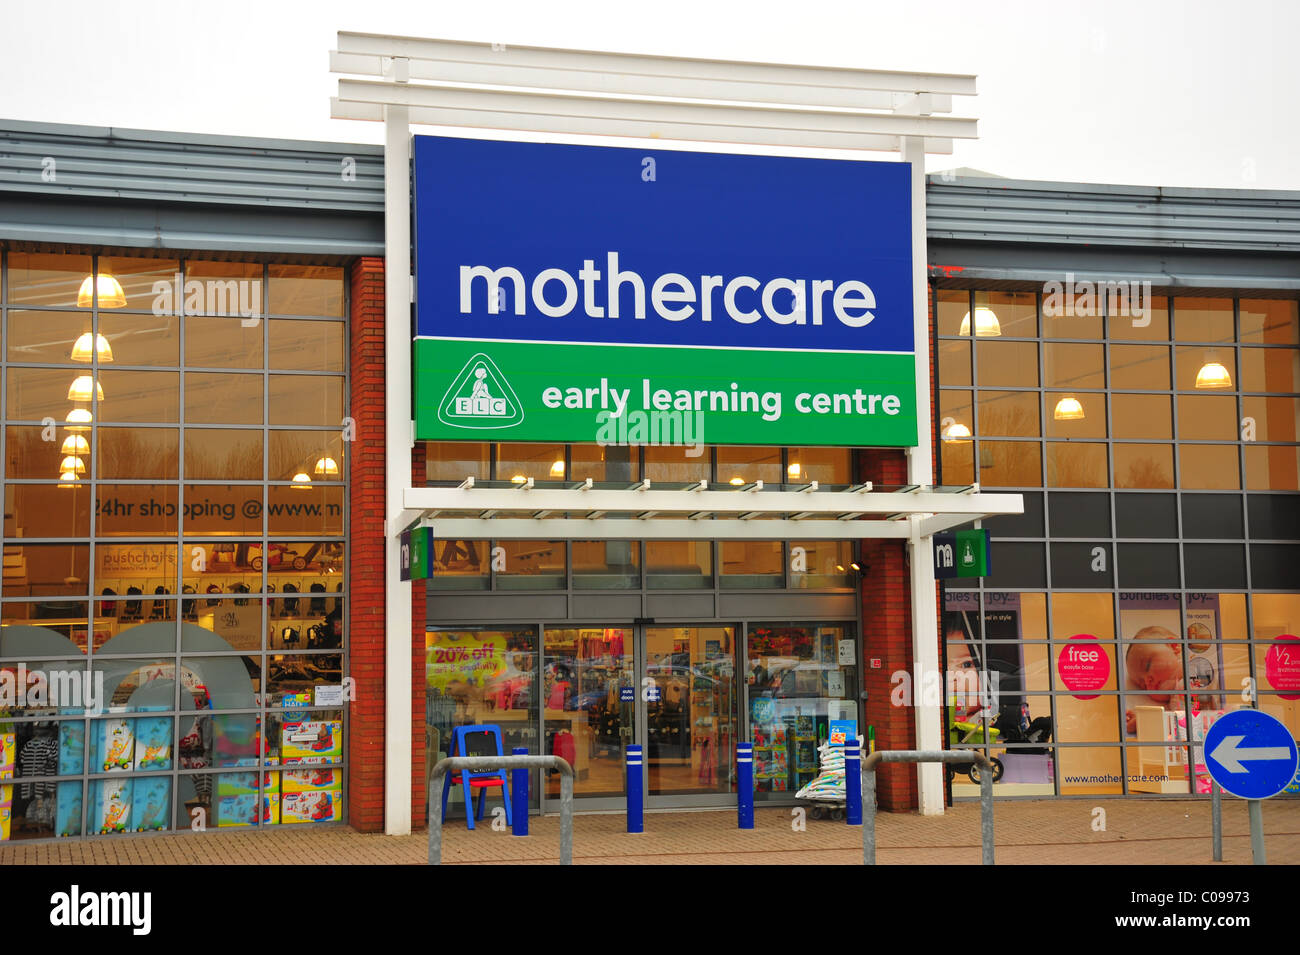 Mothercare Store front - Stock Image